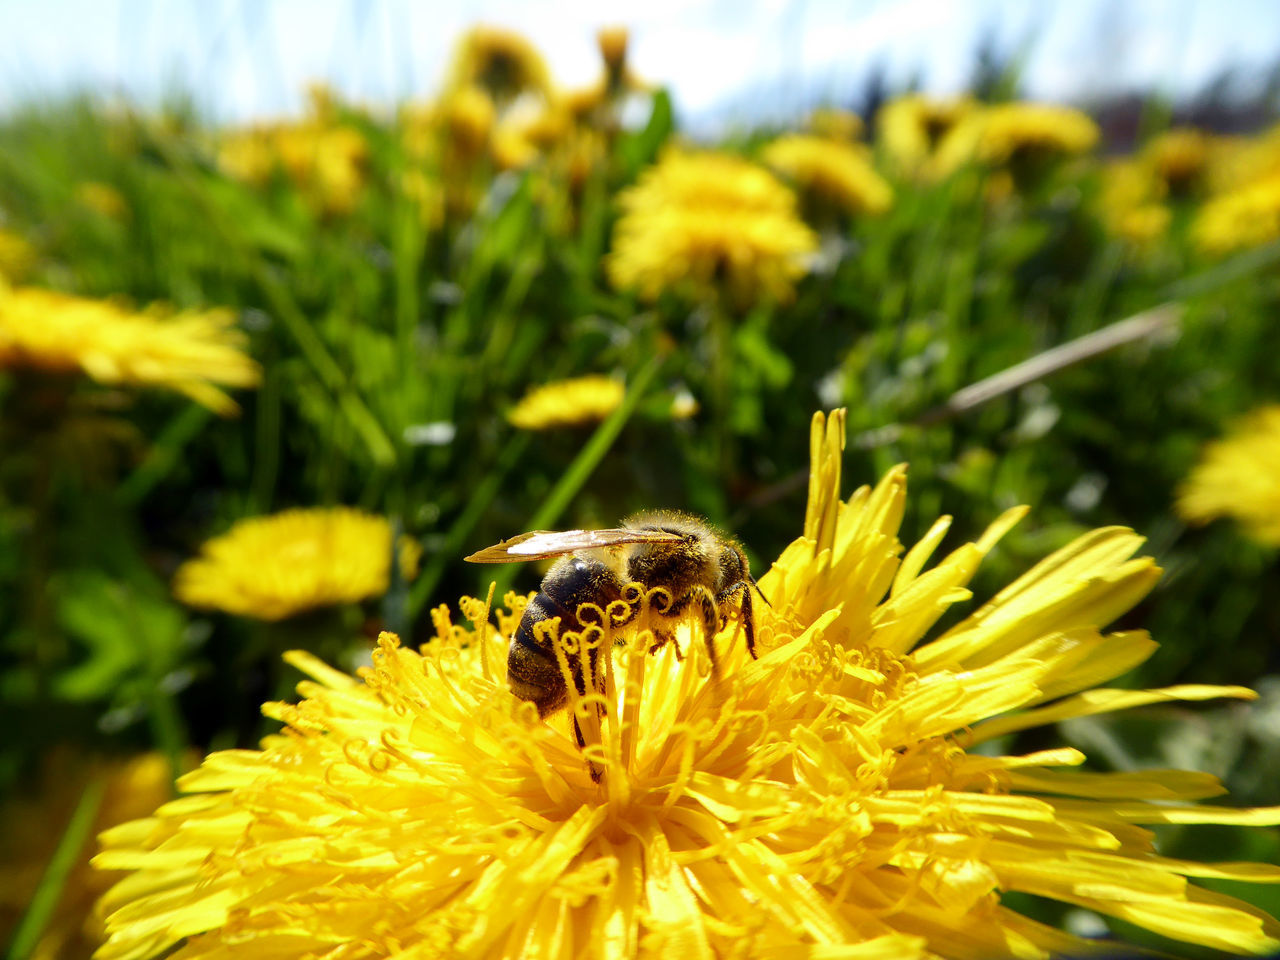 flower, yellow, nature, animal themes, animals in the wild, insect, beauty in nature, fragility, growth, one animal, petal, animal wildlife, plant, flower head, no people, outdoors, day, focus on foreground, freshness, bee, close-up, pollination